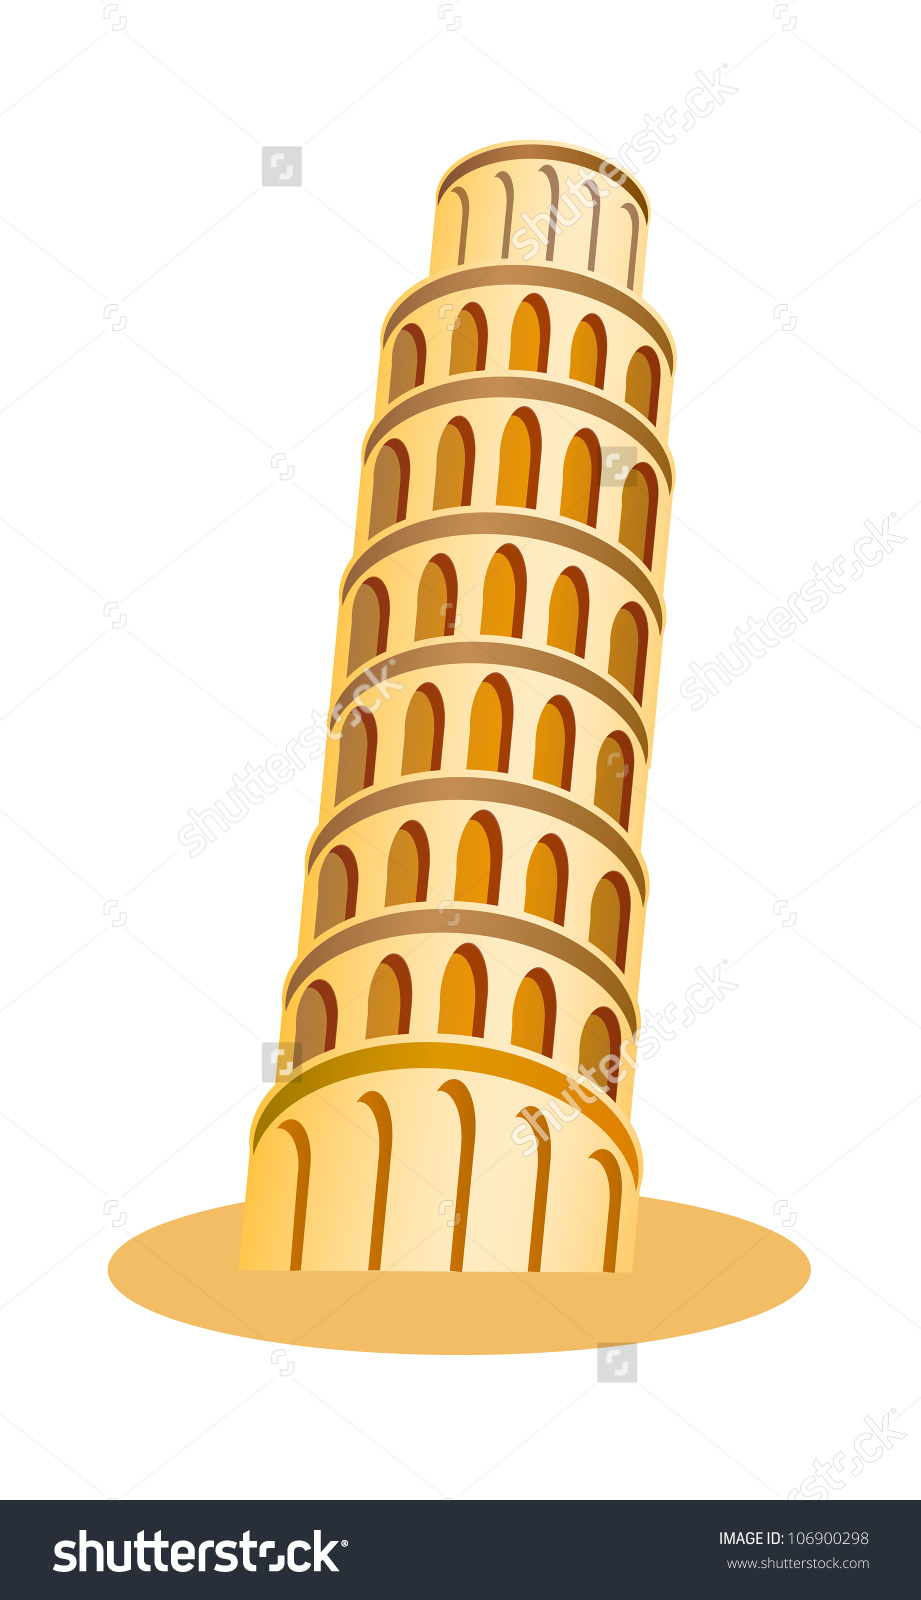 Tower clipart pisa tower #1